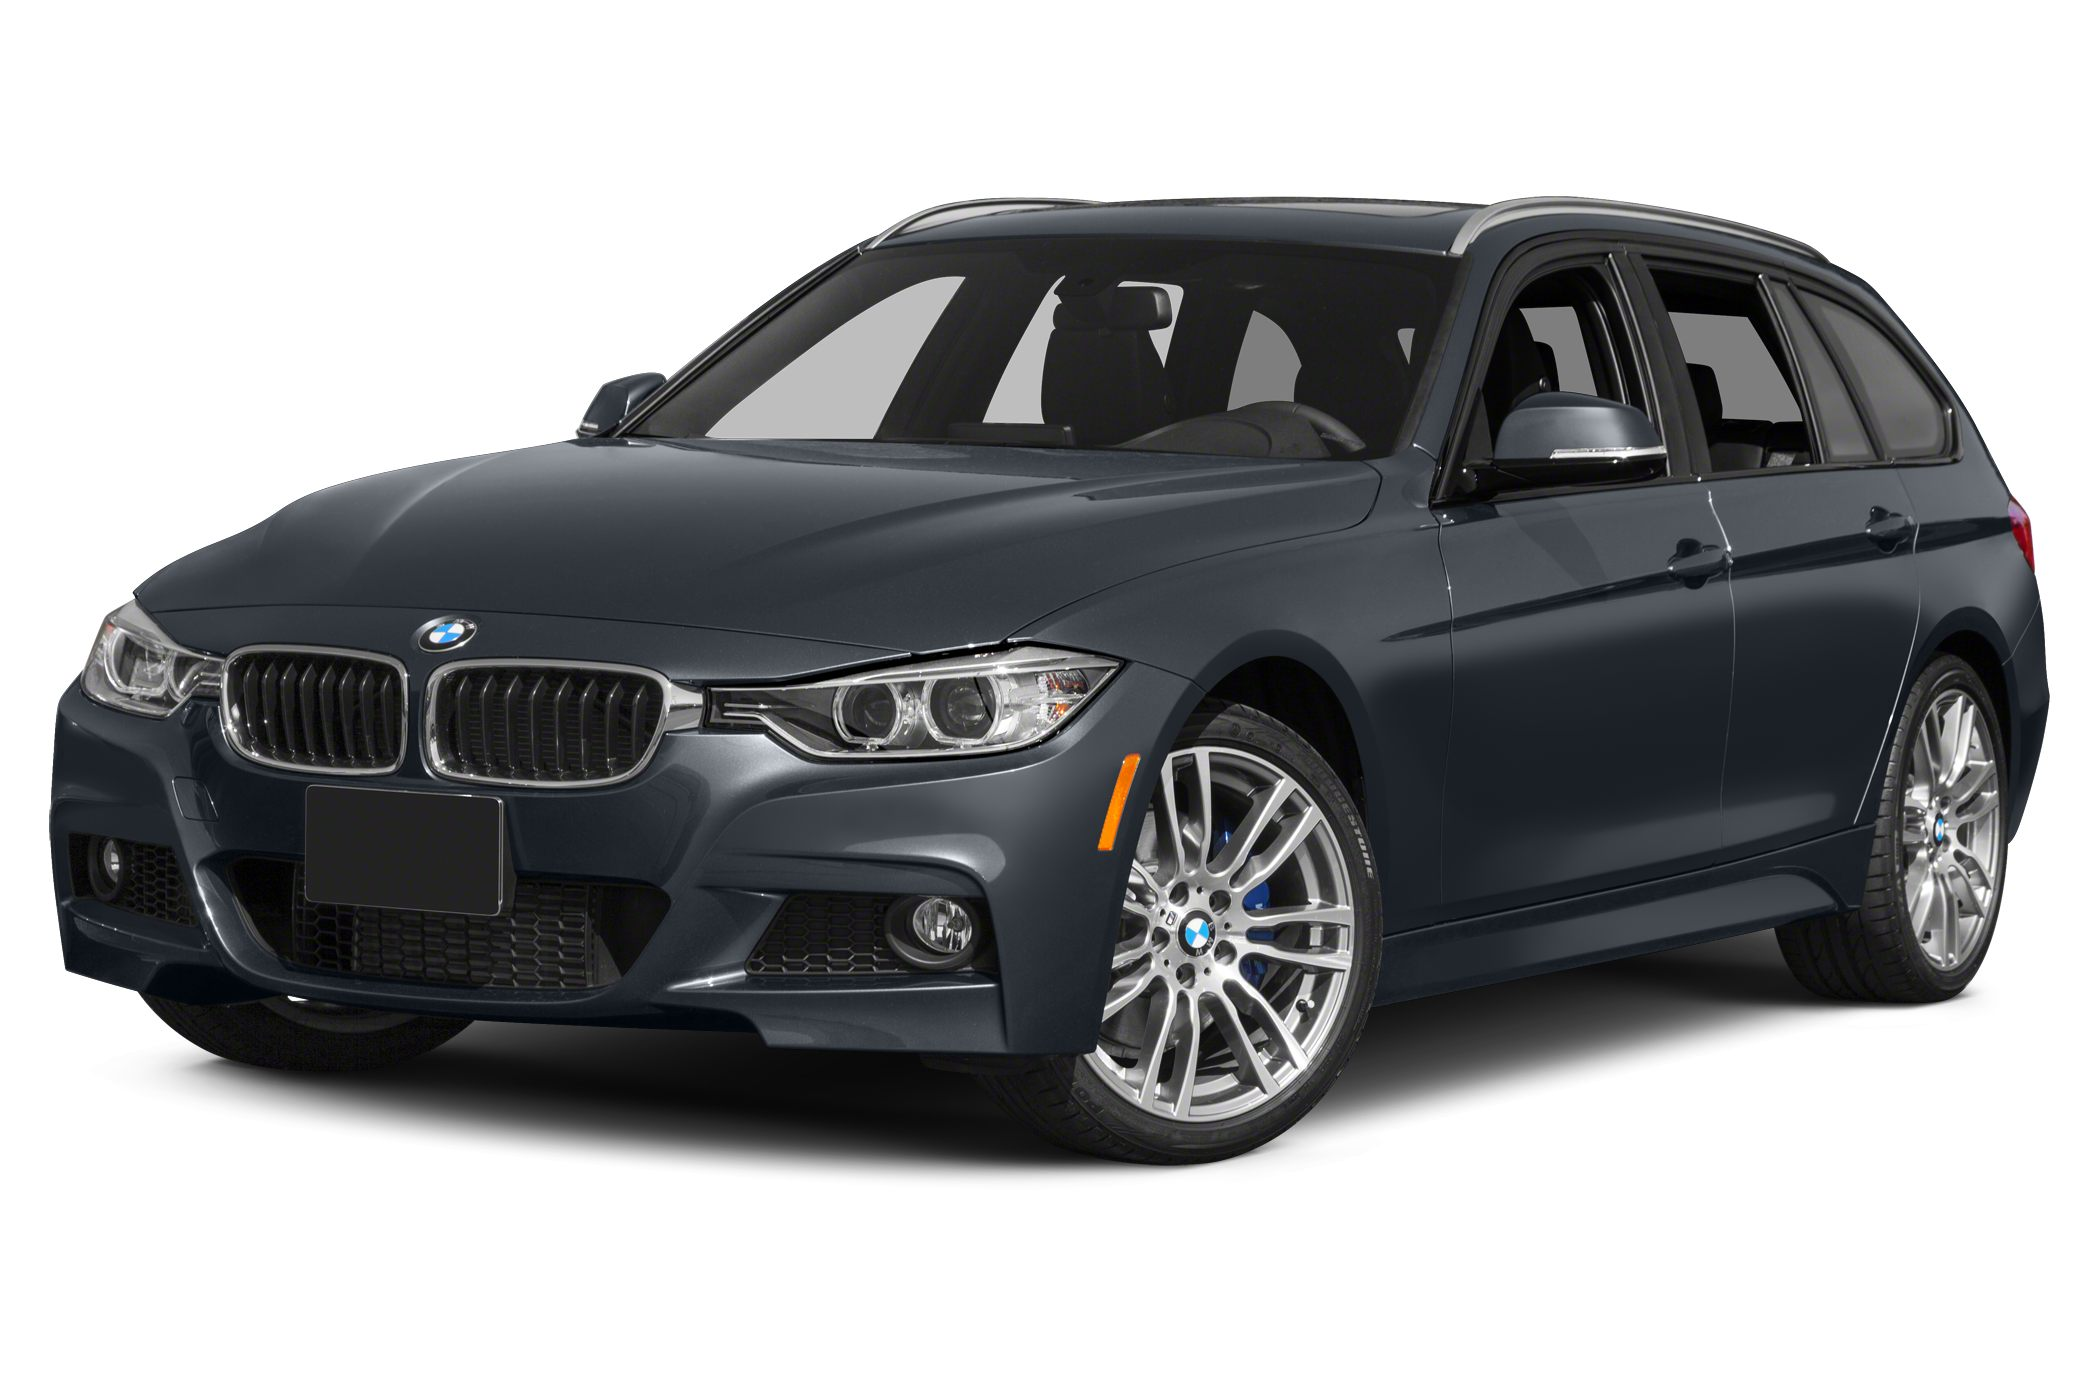 2015 BMW 328 I XDrive Sedan for sale in Mechanicsburg for $48,150 with 6 miles